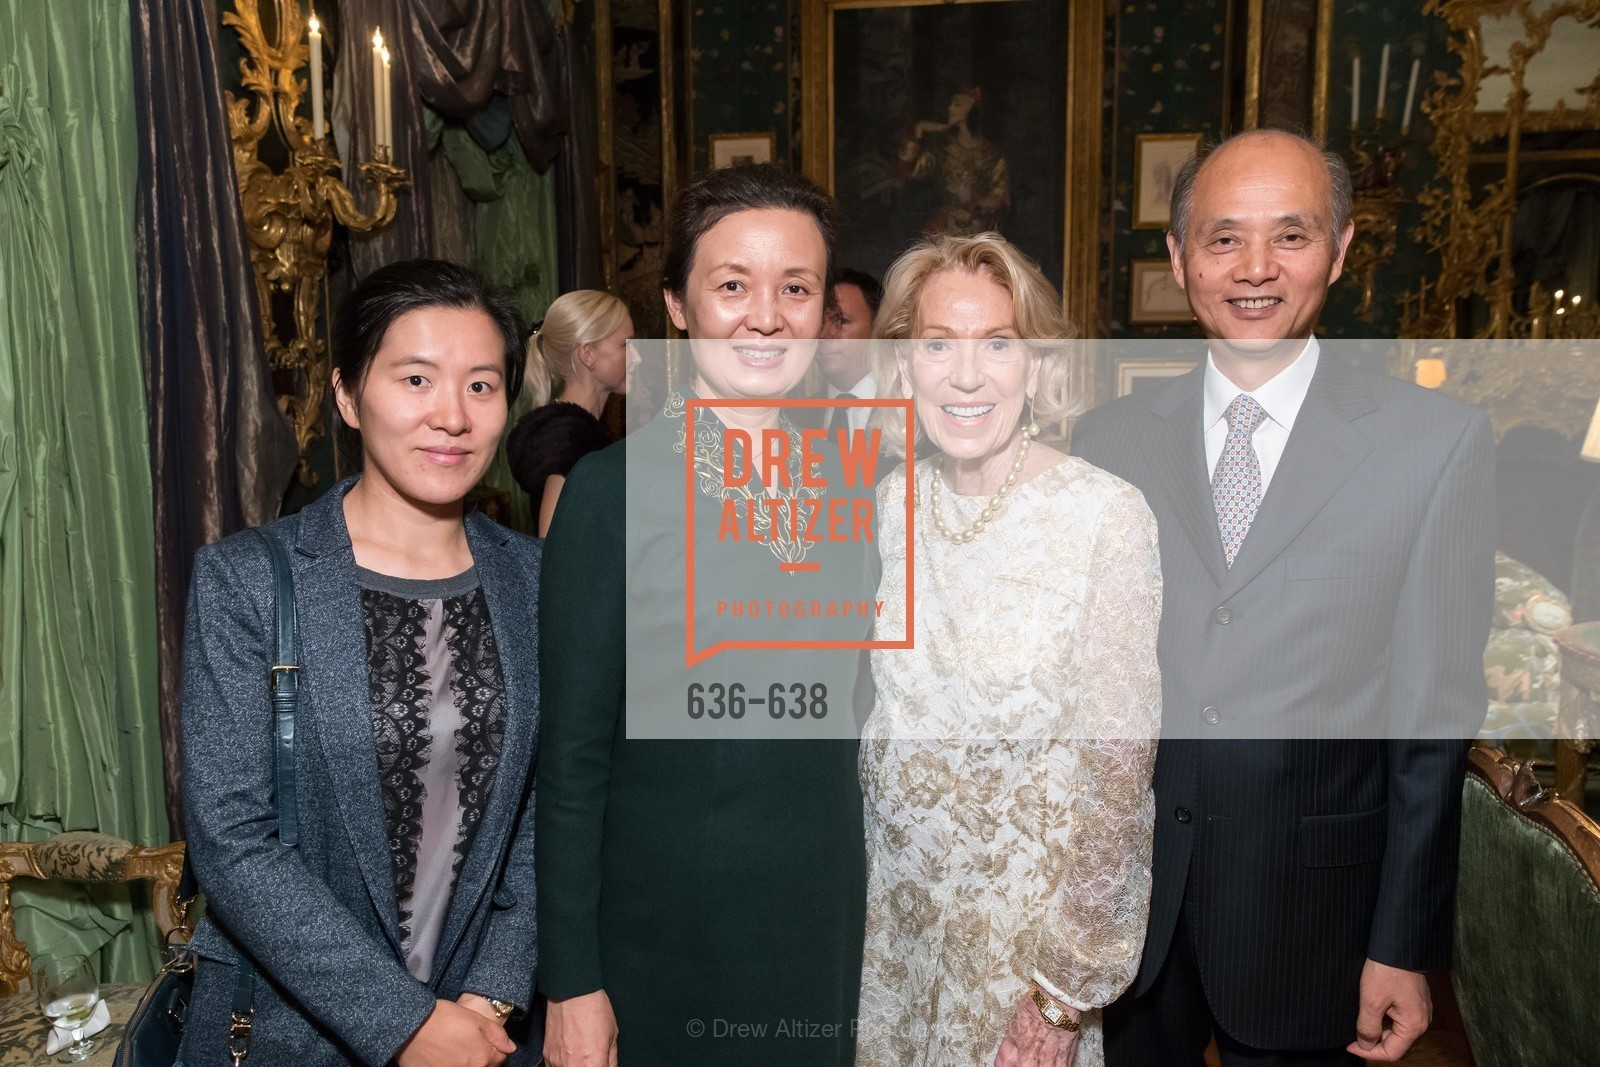 Su Han, Qiao Li, Charlotte Shultz, Luolin Quan, San Francisco Mayor's Office of Protocol Christmas Party, Private Residence, December 9th, 2015,Drew Altizer, Drew Altizer Photography, full-service agency, private events, San Francisco photographer, photographer california